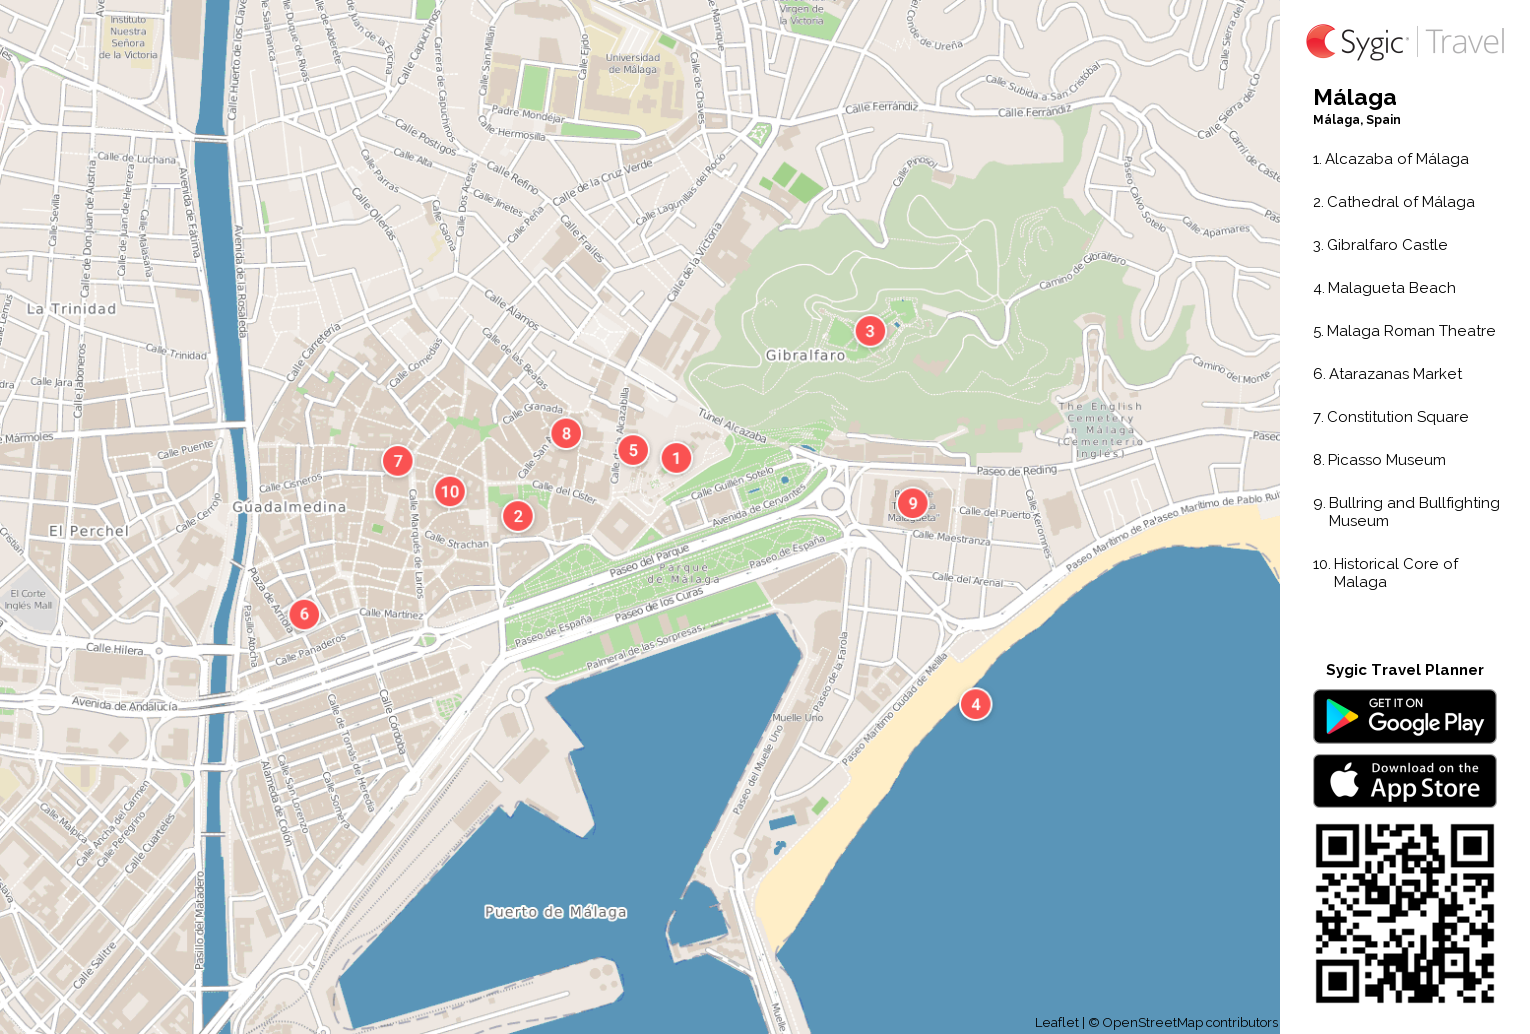 málaga printable tourist map  sygic travel - málaga printable tourist map